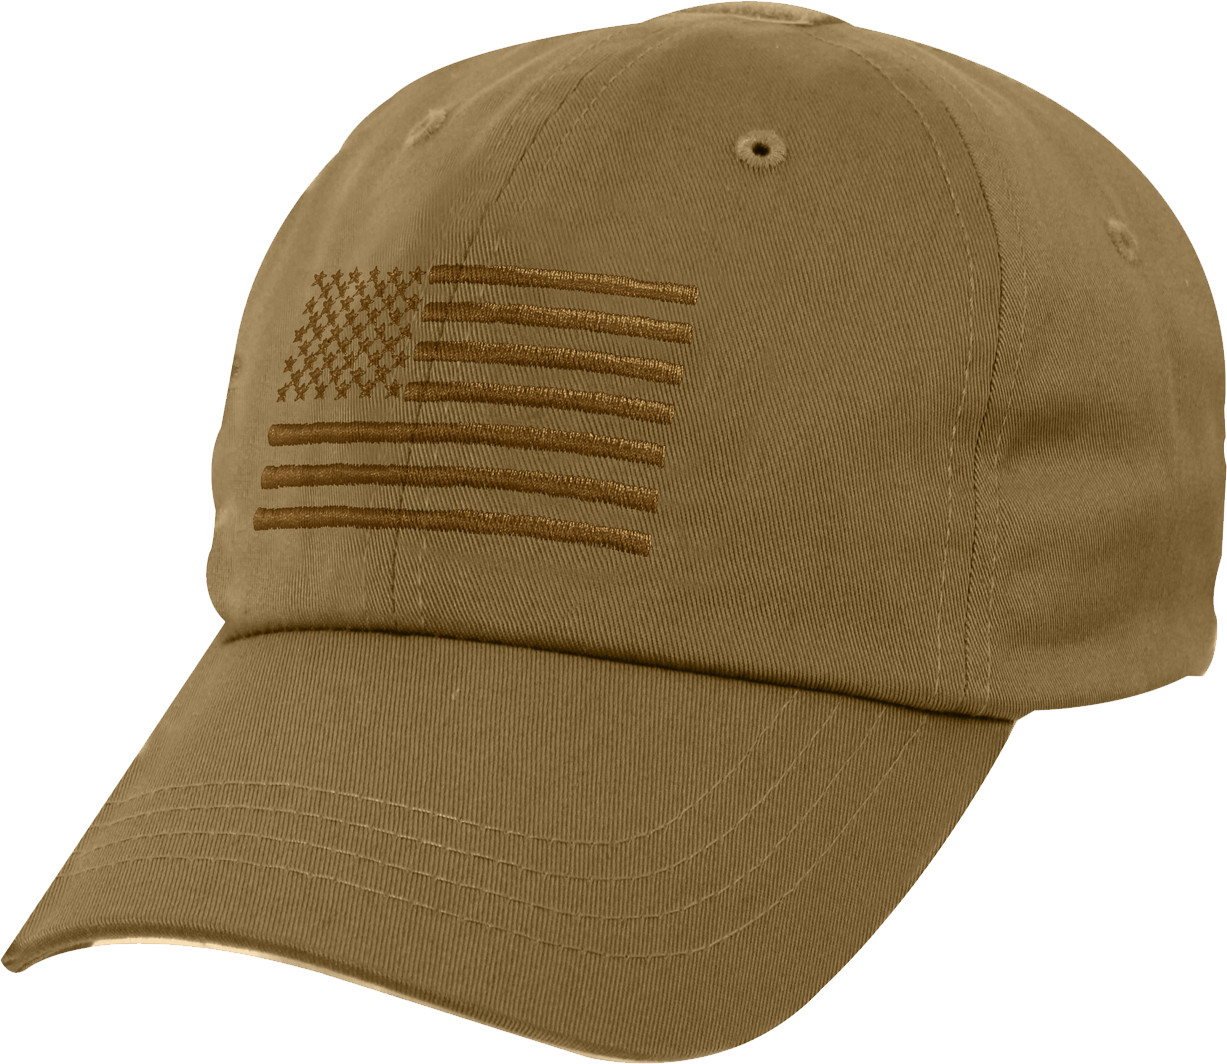 More Views. Coyote Brown Military US Flag Tactical Baseball Hat ... 806bc053f6a